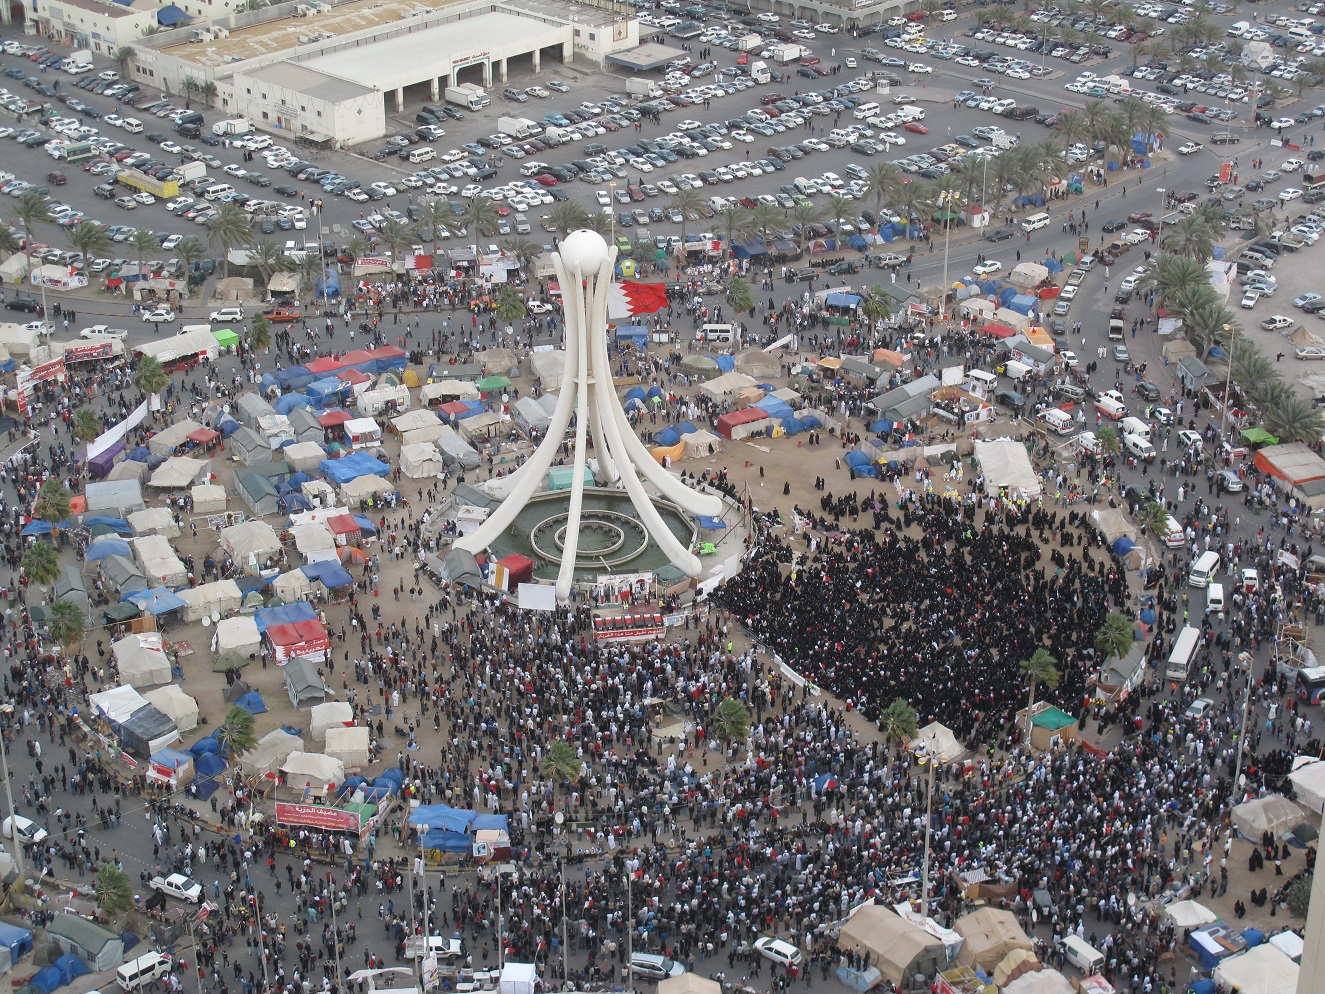 Thousands_of_protesters_gathering_in_Pearl_roundabout_2_days_before_crackdown